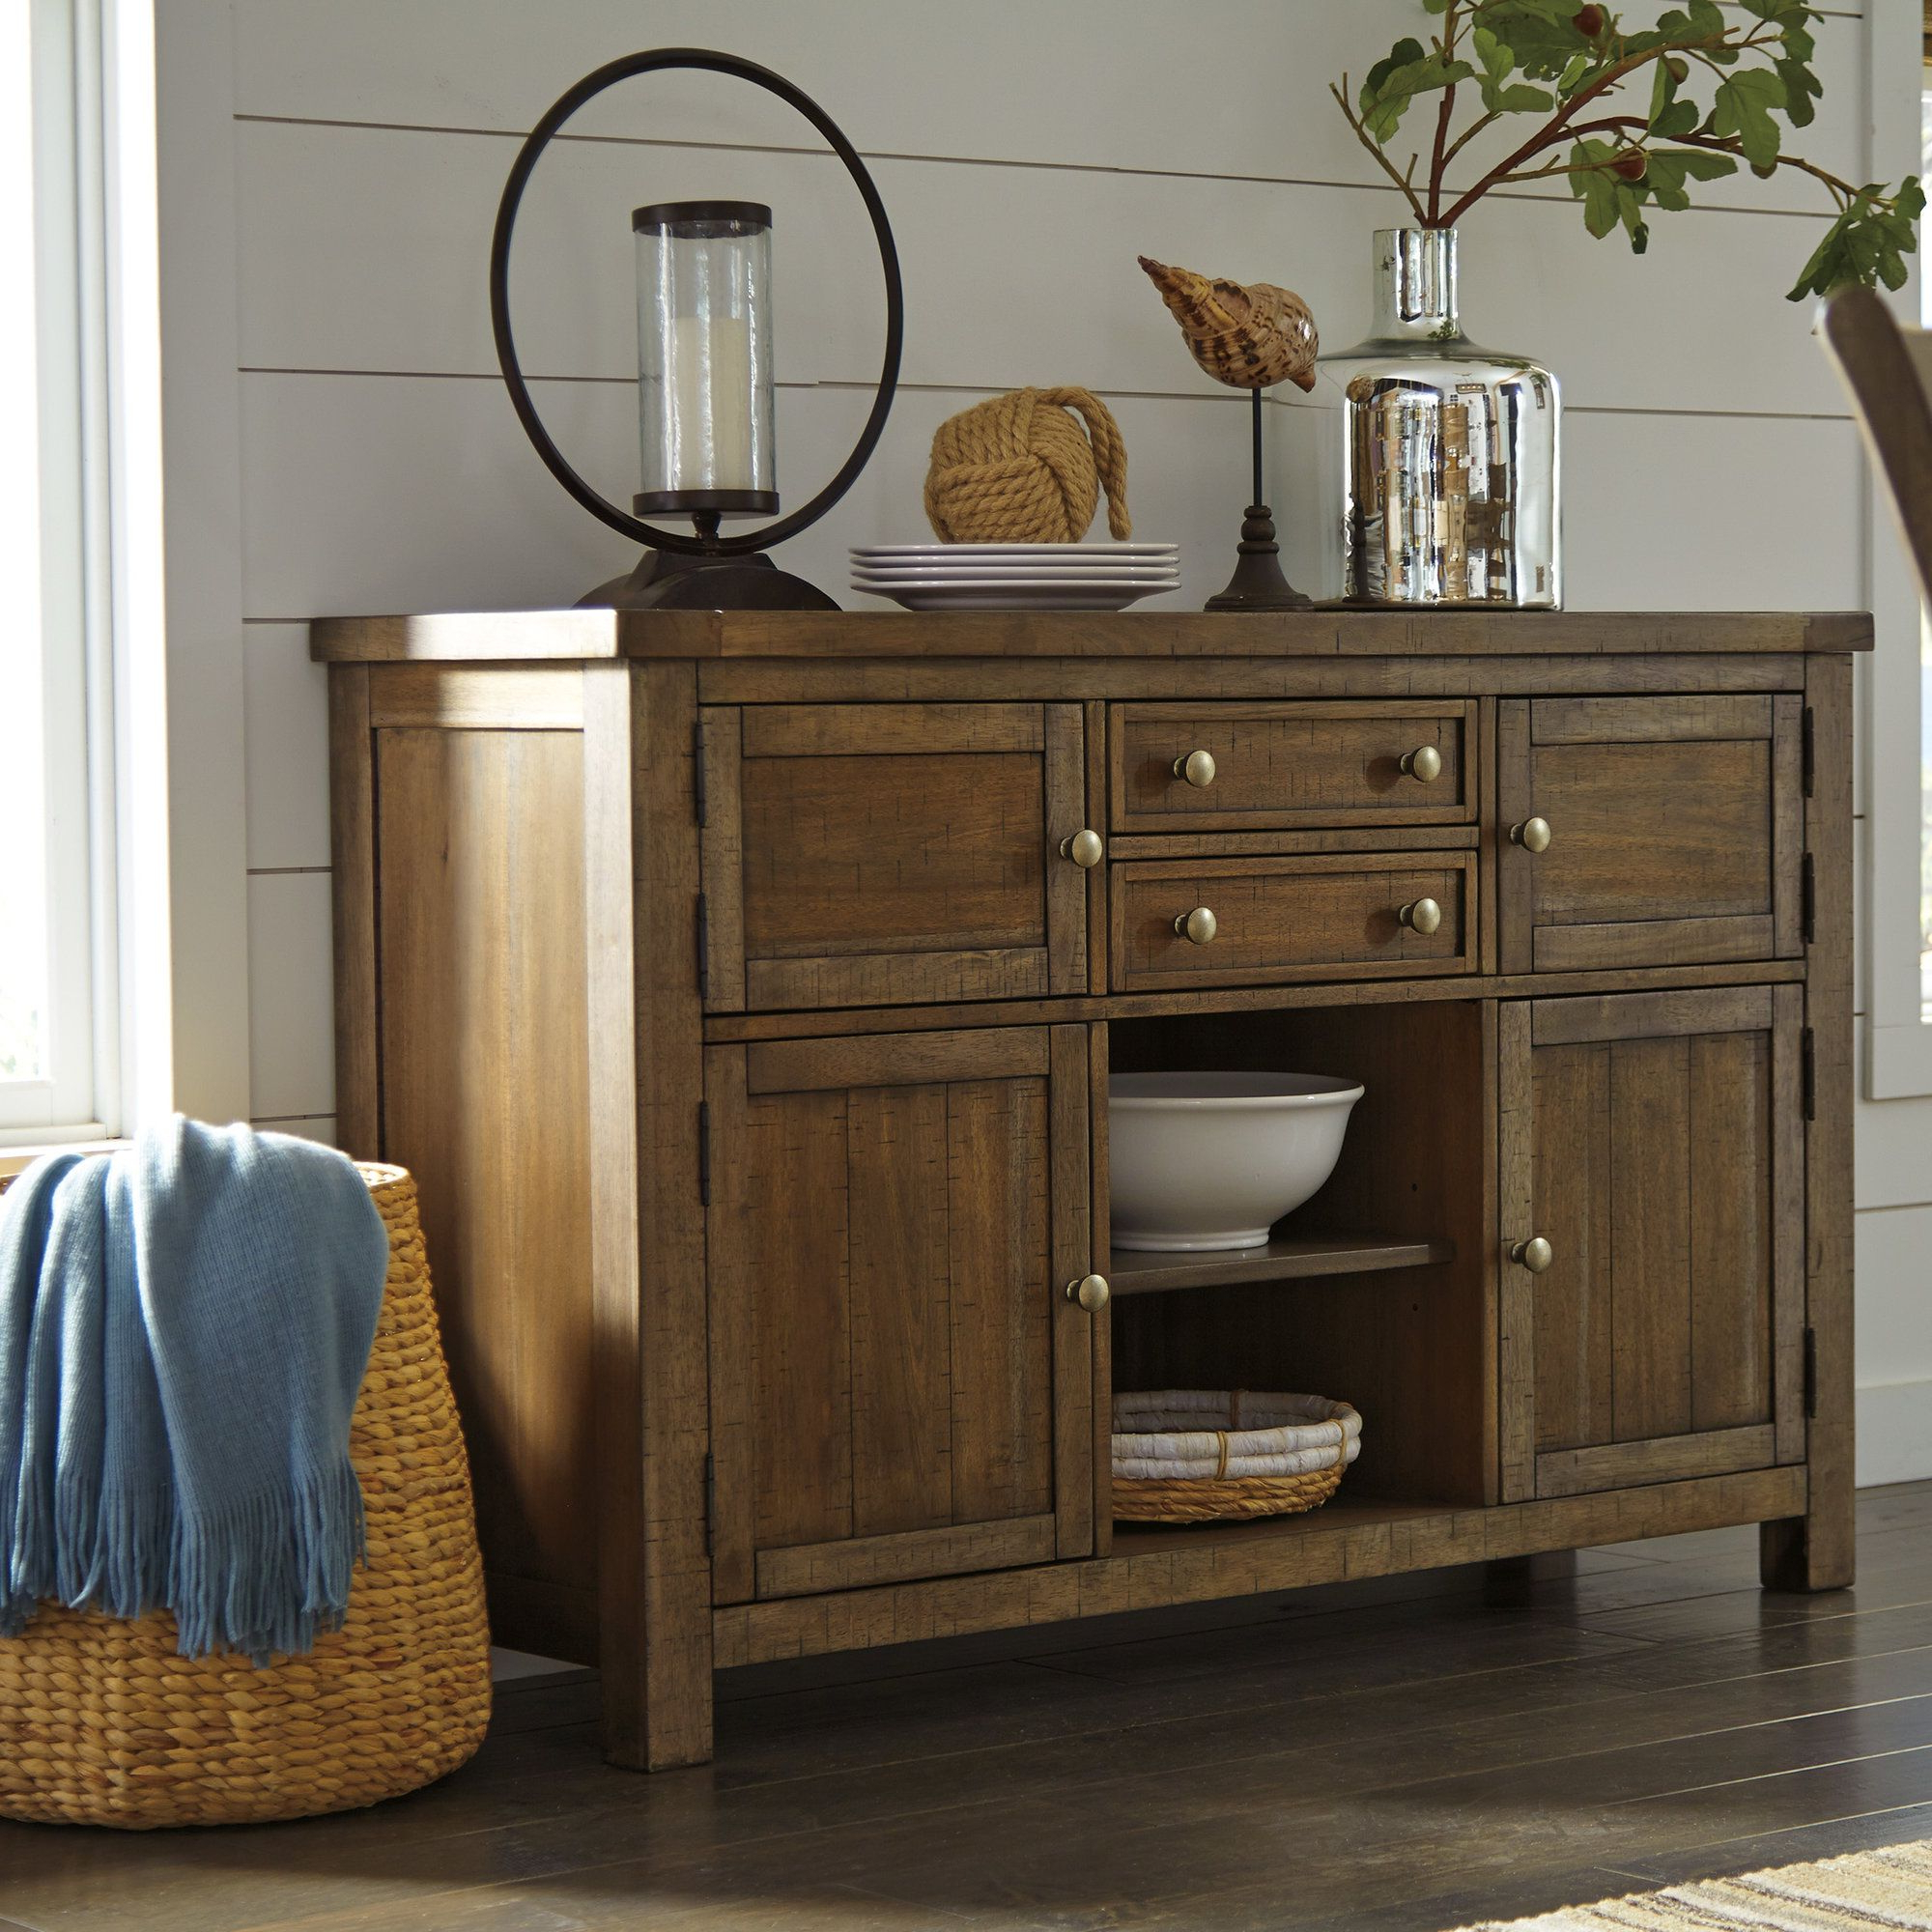 Hillary Dining Room Buffet Table | Dining Room Furniture Within Nashoba Sideboards (View 5 of 20)